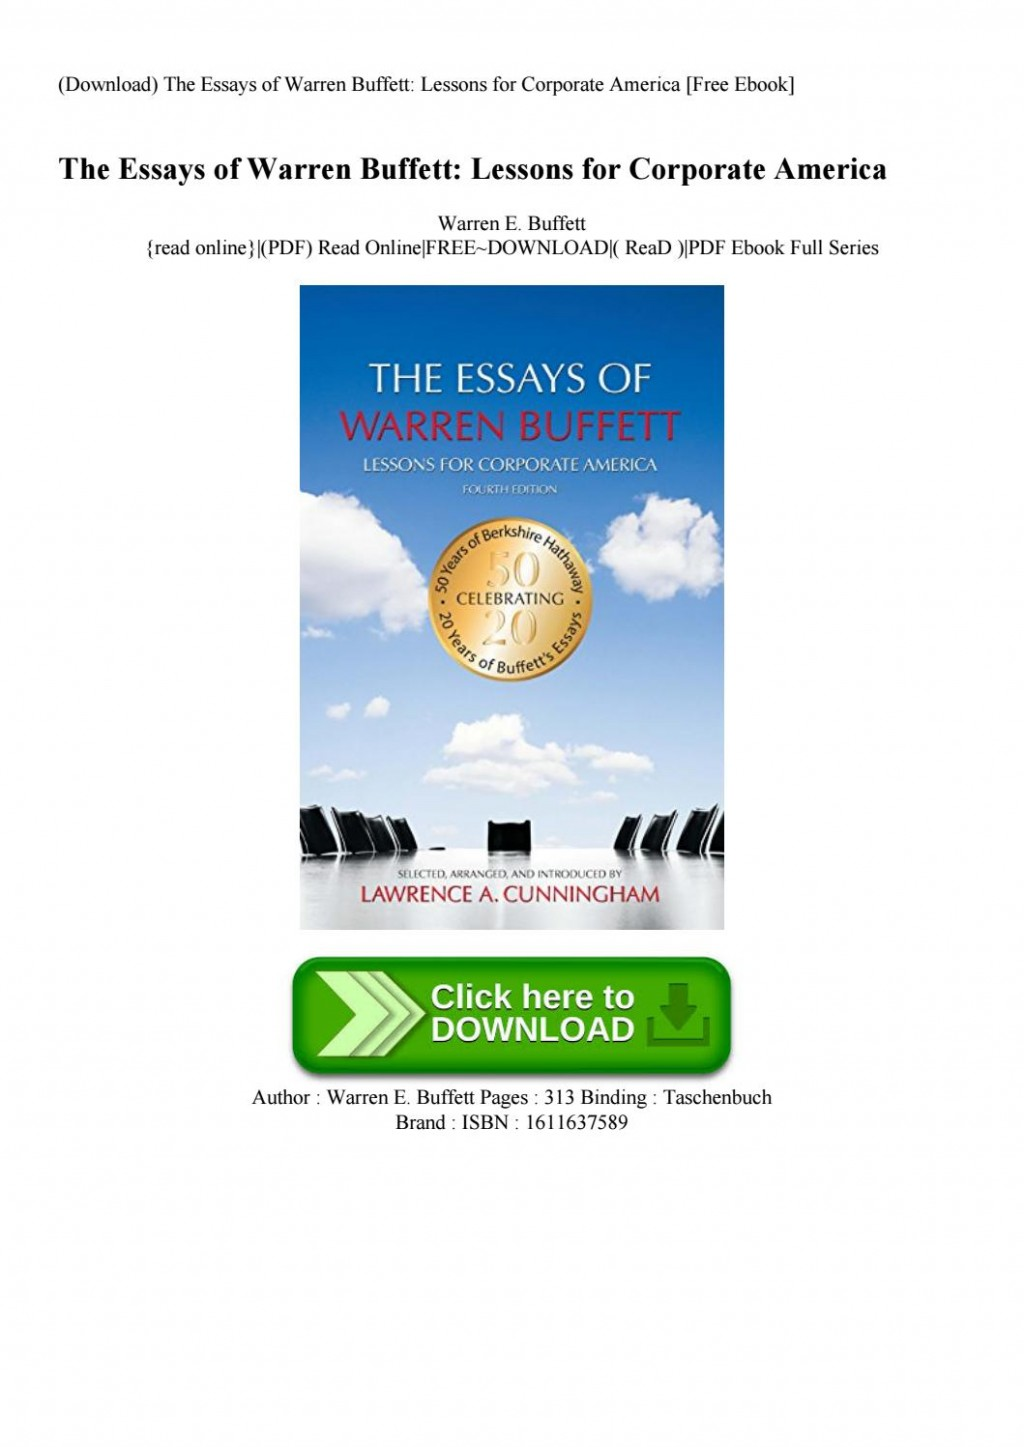 011 Essay Example Page 1 The Essays Of Warren Buffett Lessons For Corporate Remarkable America Third Edition 3rd Second Pdf Audio Book Large